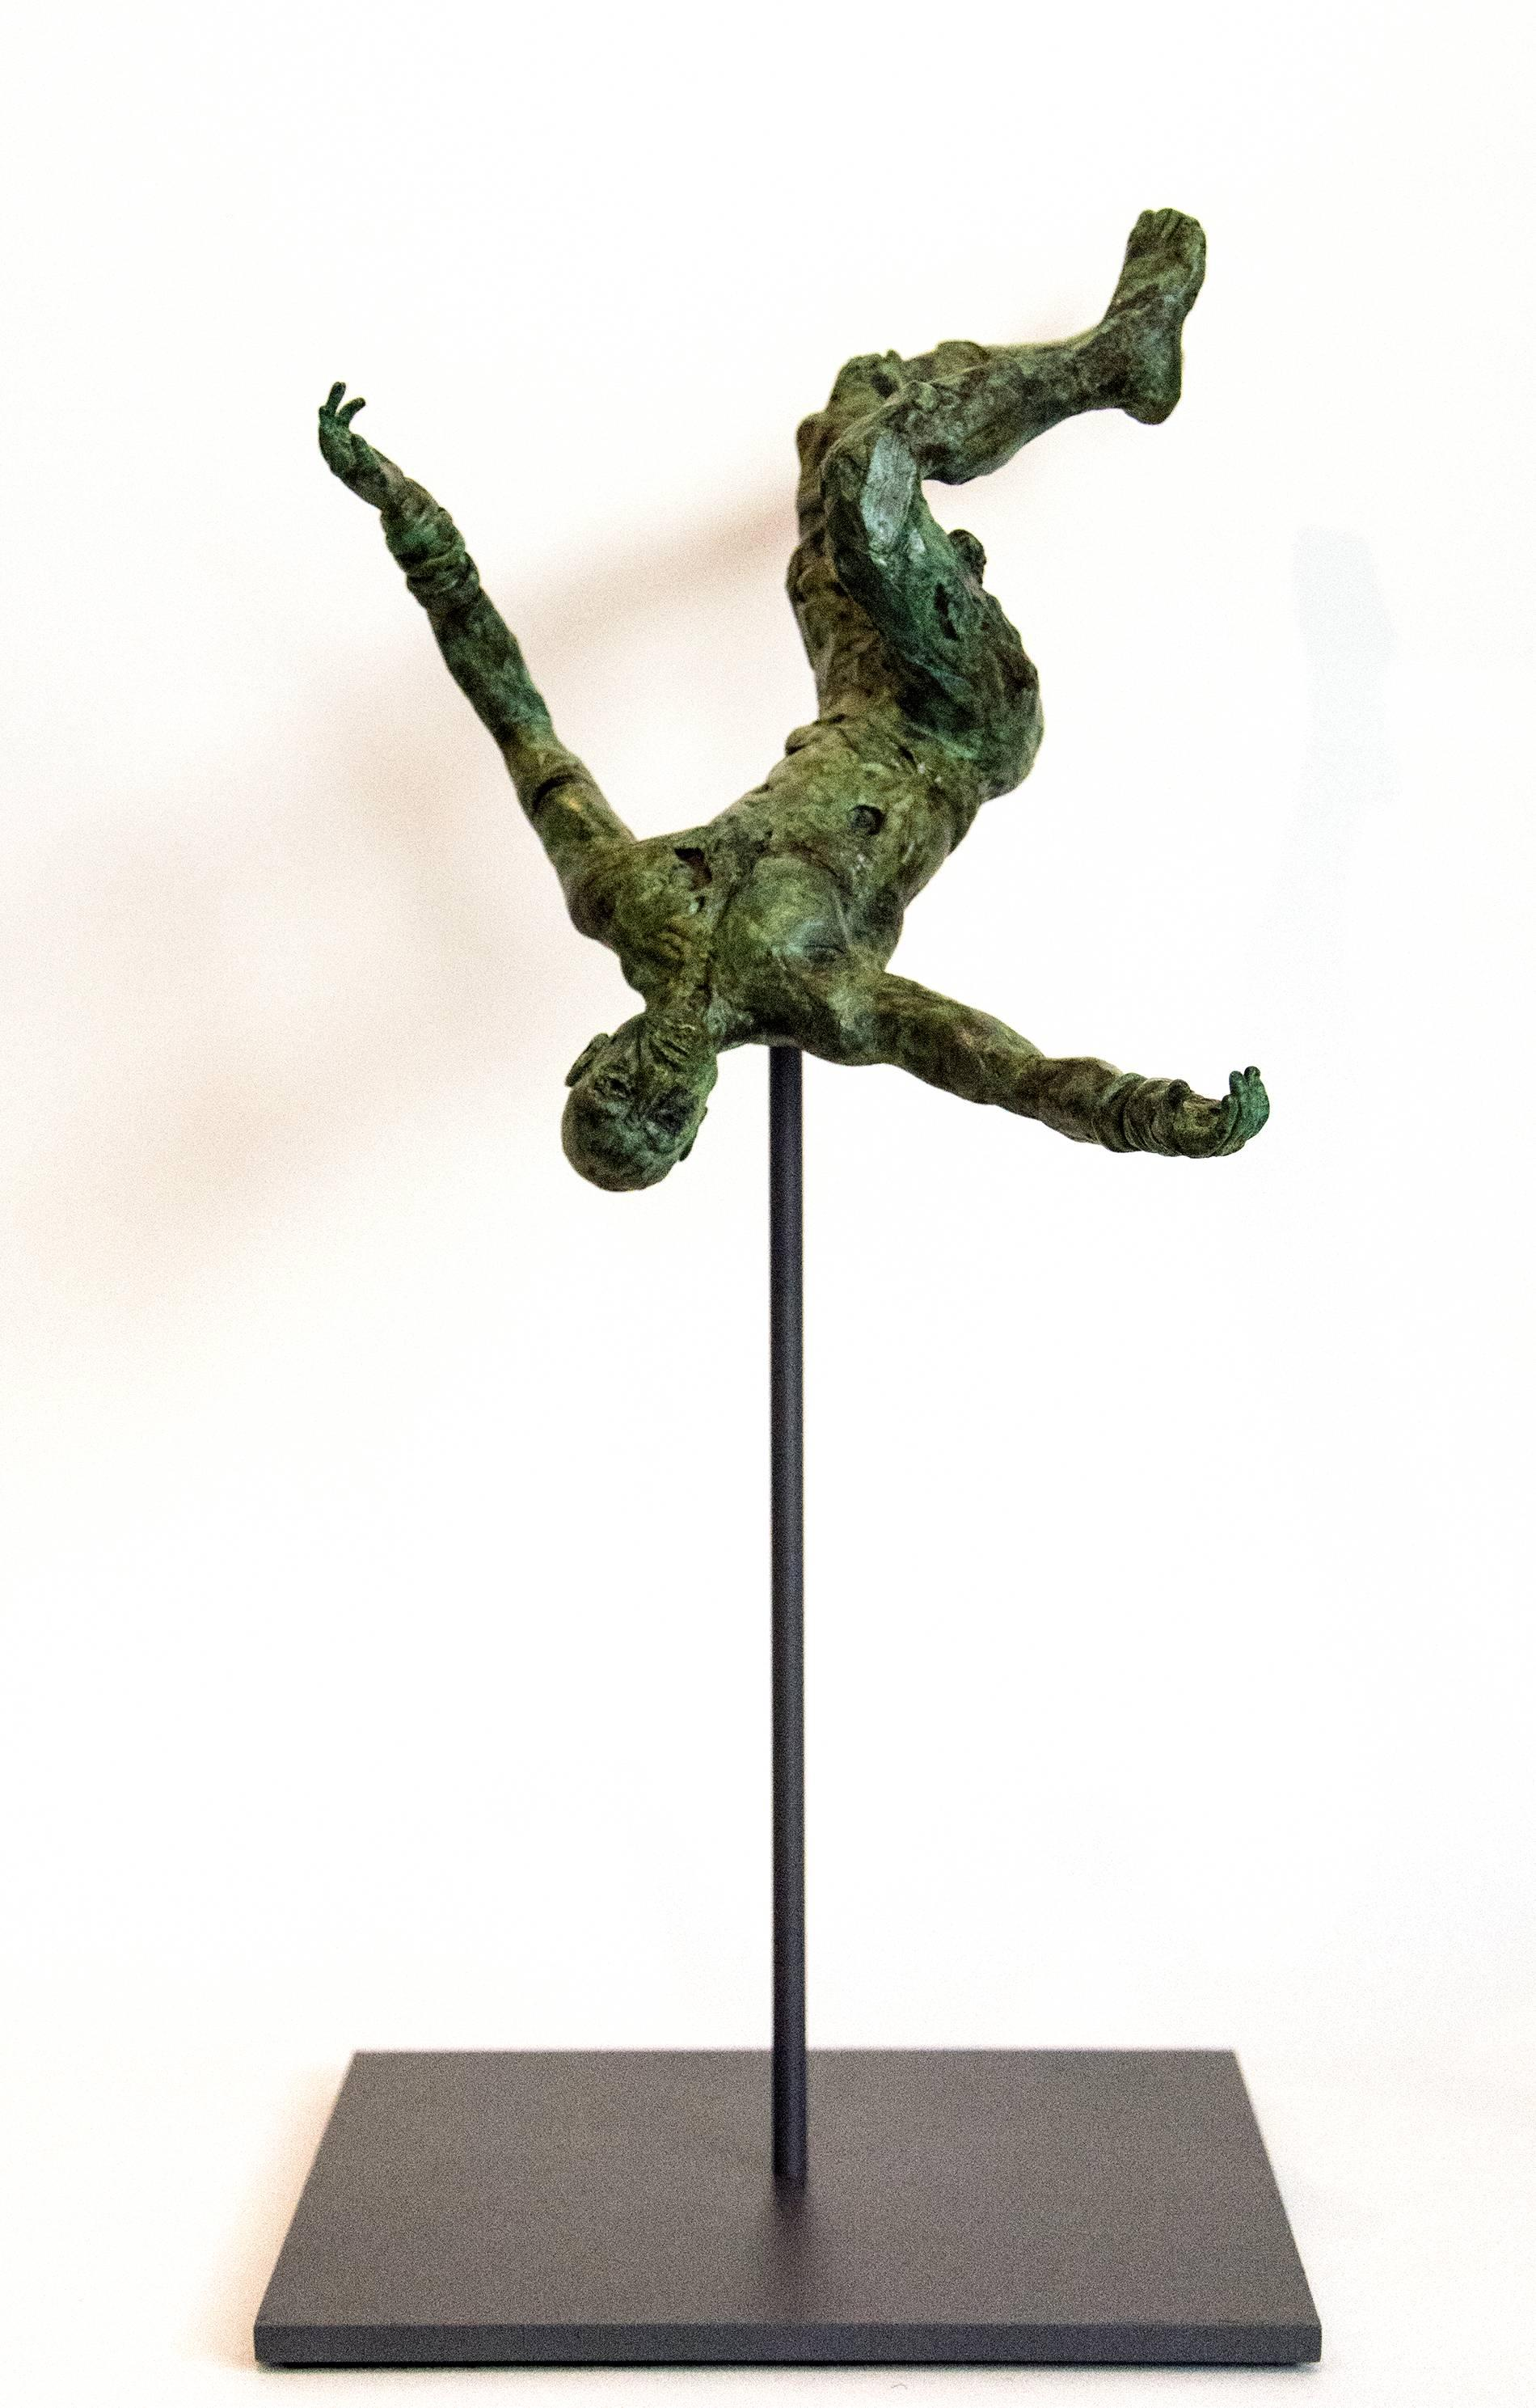 Equilibrium No 1 - small, lively, figurative, male, bronze, sculpture series